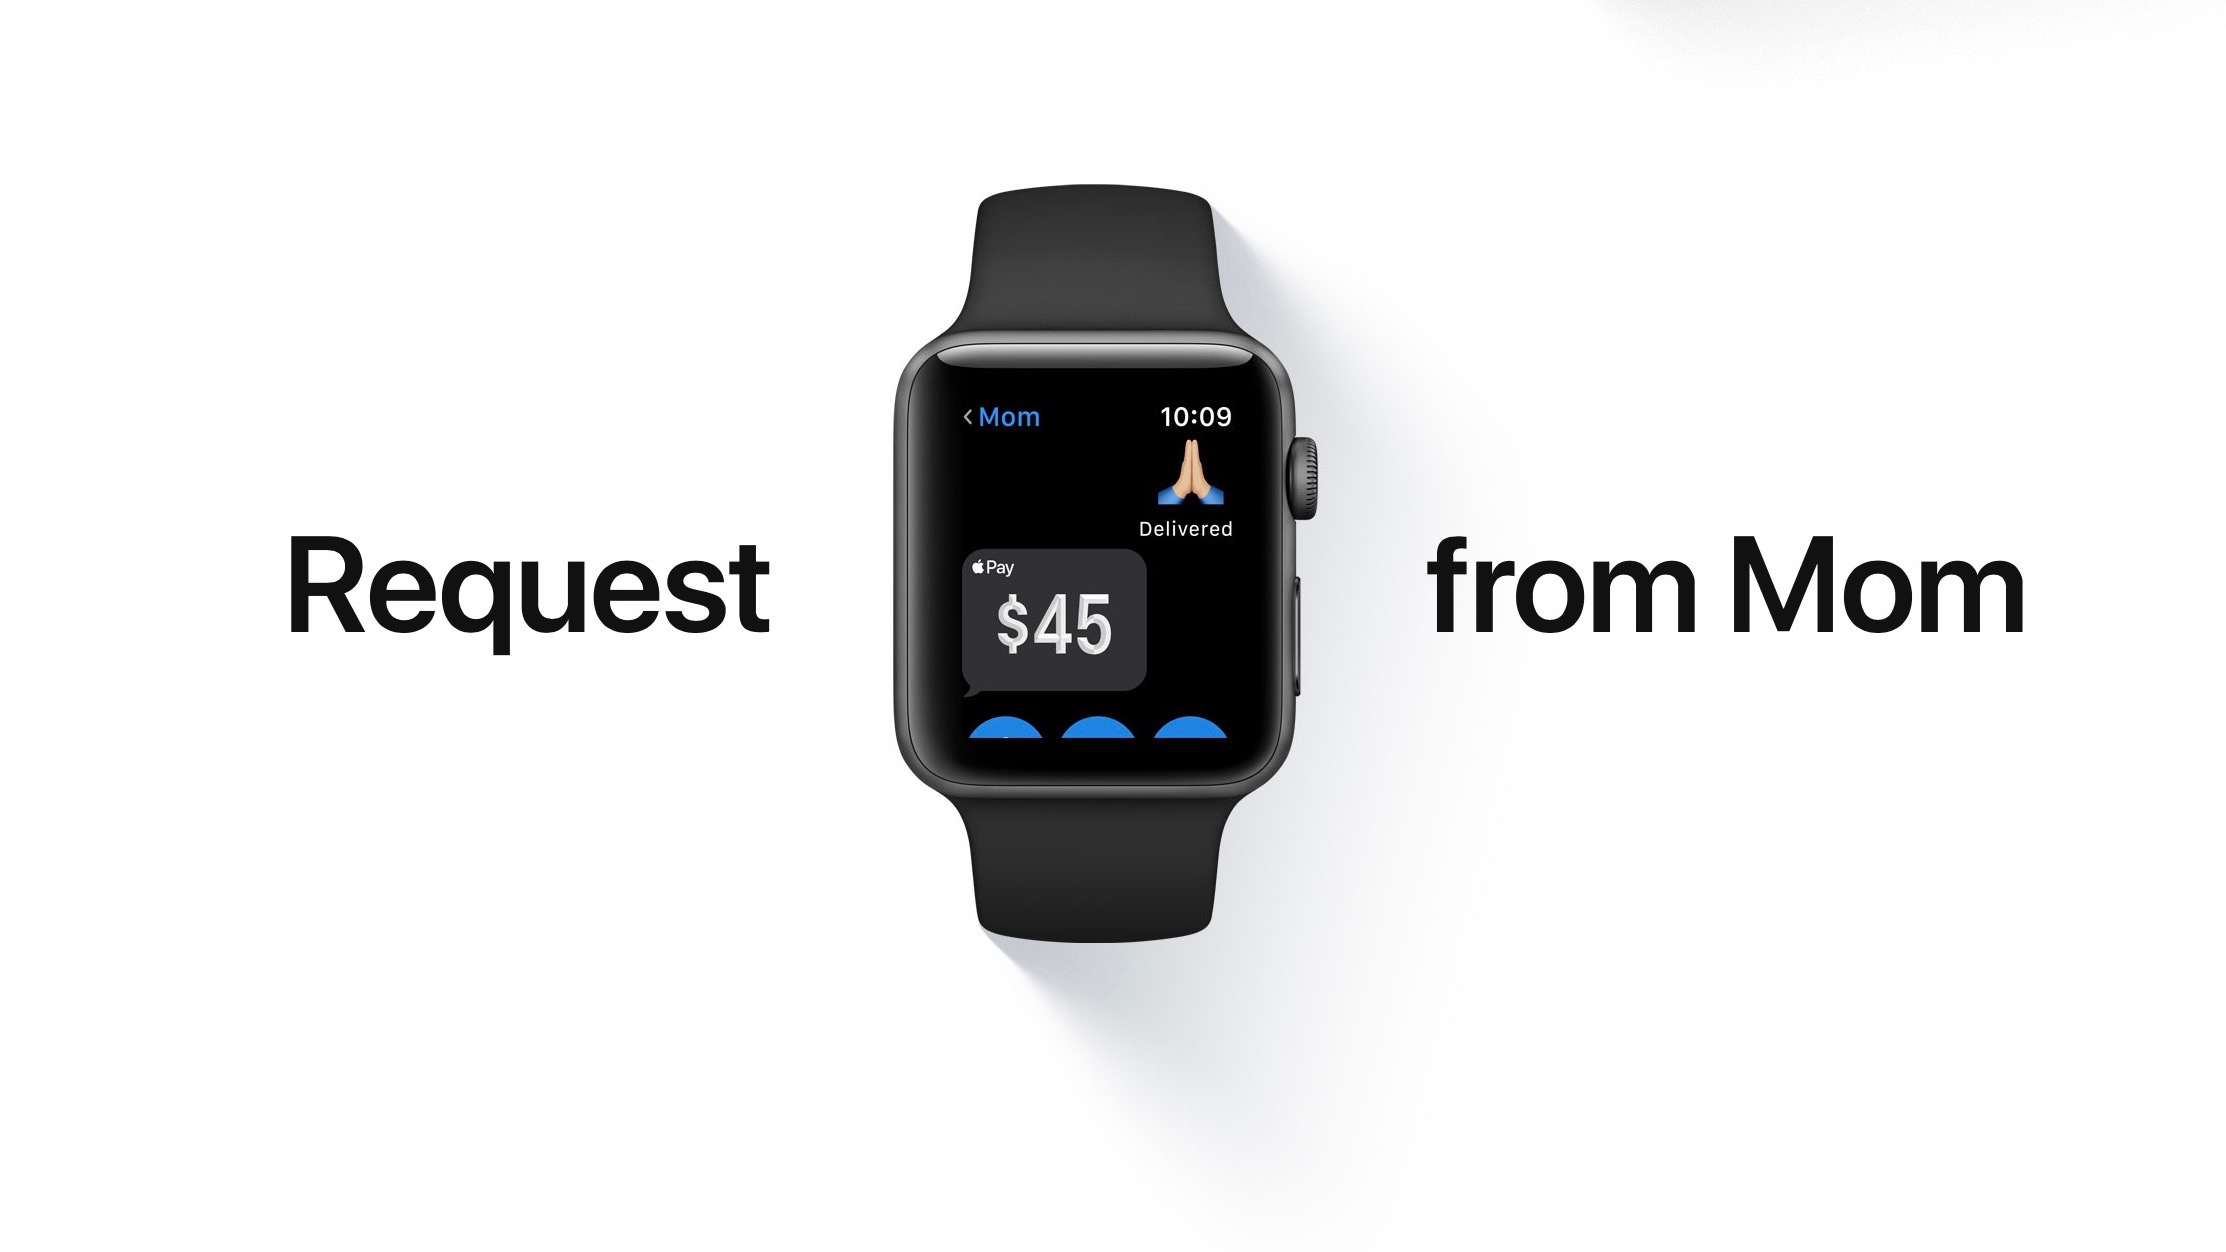 Leaked watchOS 4.1 GM release notes suggest no Apple Pay Cash w/ iOS 11.1